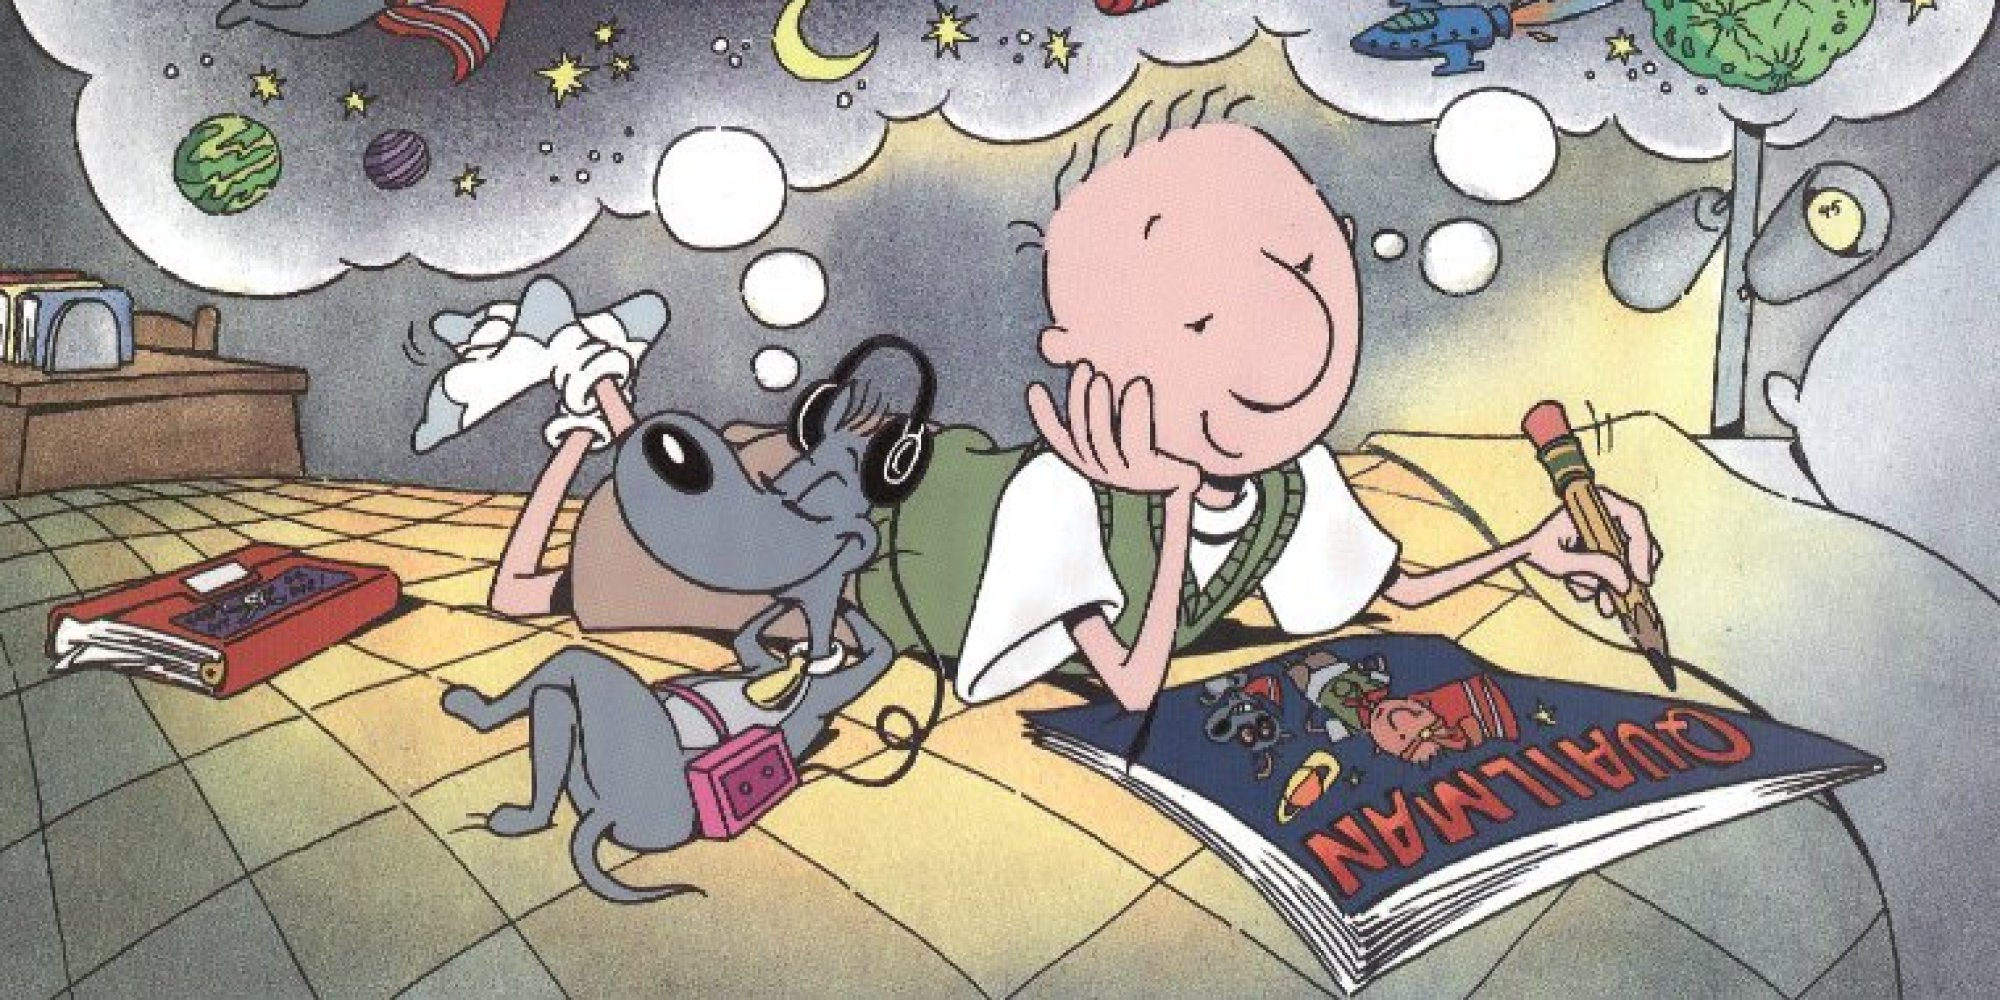 Serie Doug Doug Nickelodeon Series Creator Has Ideas For A Reboot